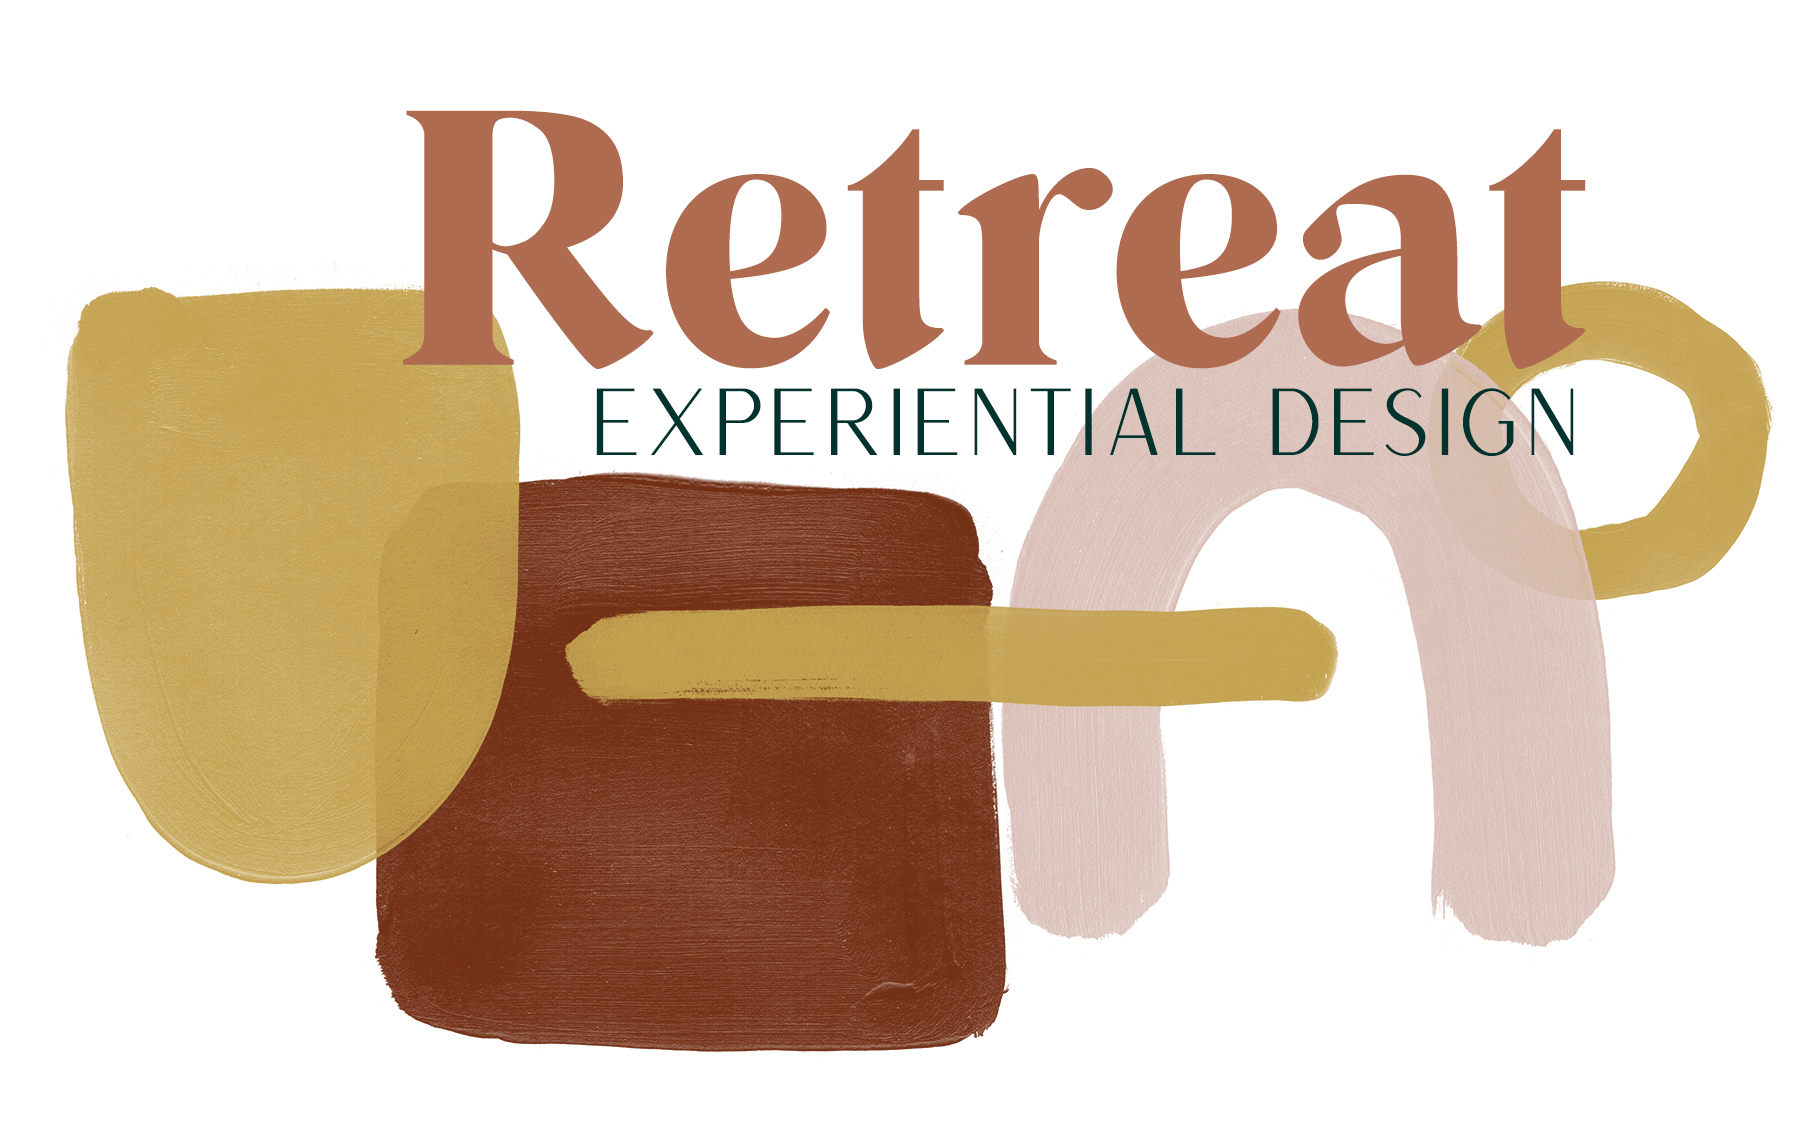 Retreat Experiential Design - Experiential Design for your AirBnB Property